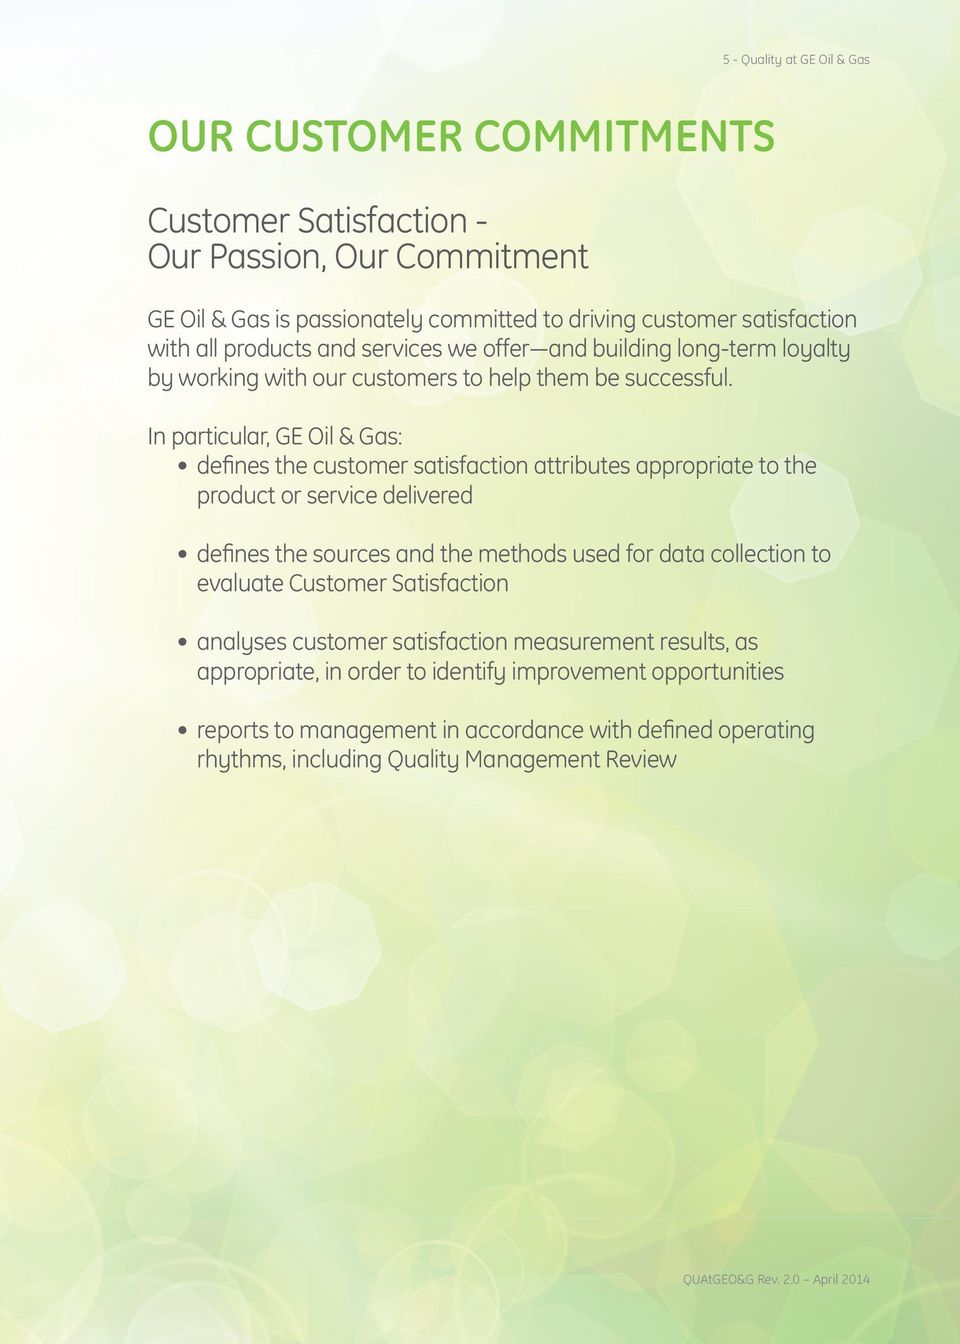 In particular, GE Oil & Gas: defines the customer satisfaction attributes appropriate to the product or service delivered defines the sources and the methods used for data collection to